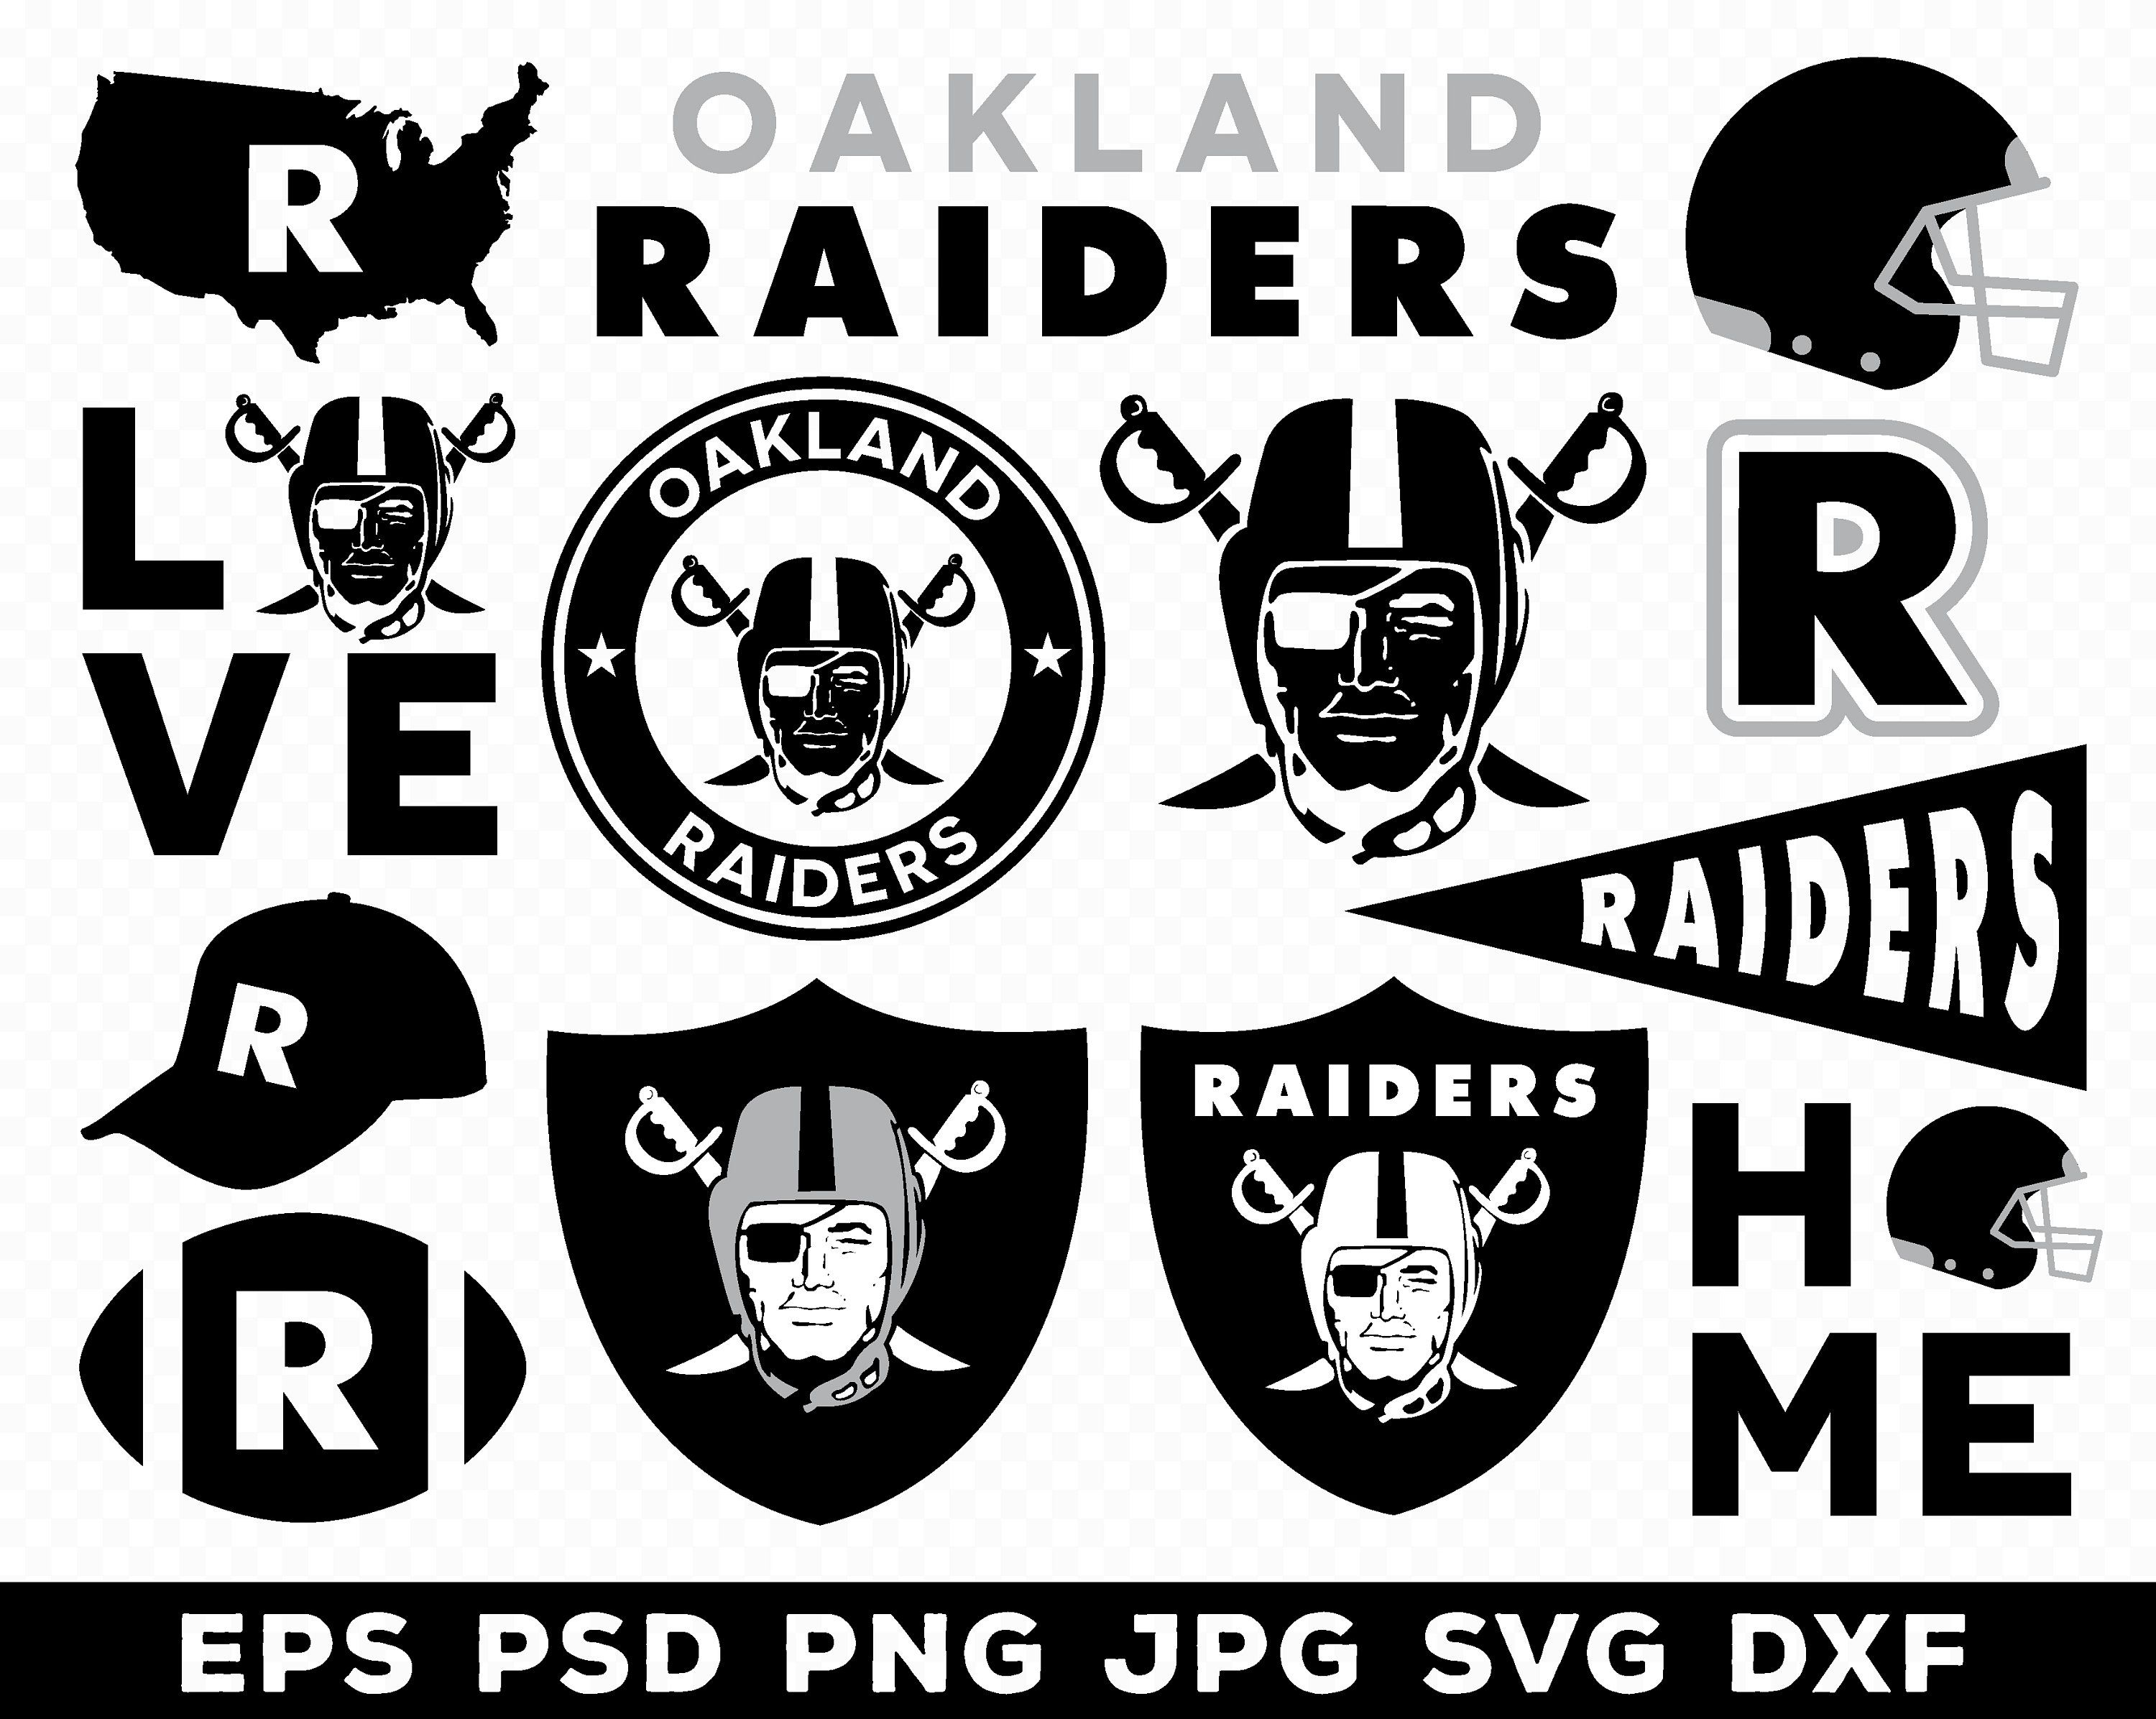 Oakland Raiders Oakland Raiders Logo Oakland Raiders Svg Oakland Raiders Clipart Oakland Raiders Raiders Svg Oakland Raiders Logo Oakland Raiders Oakland